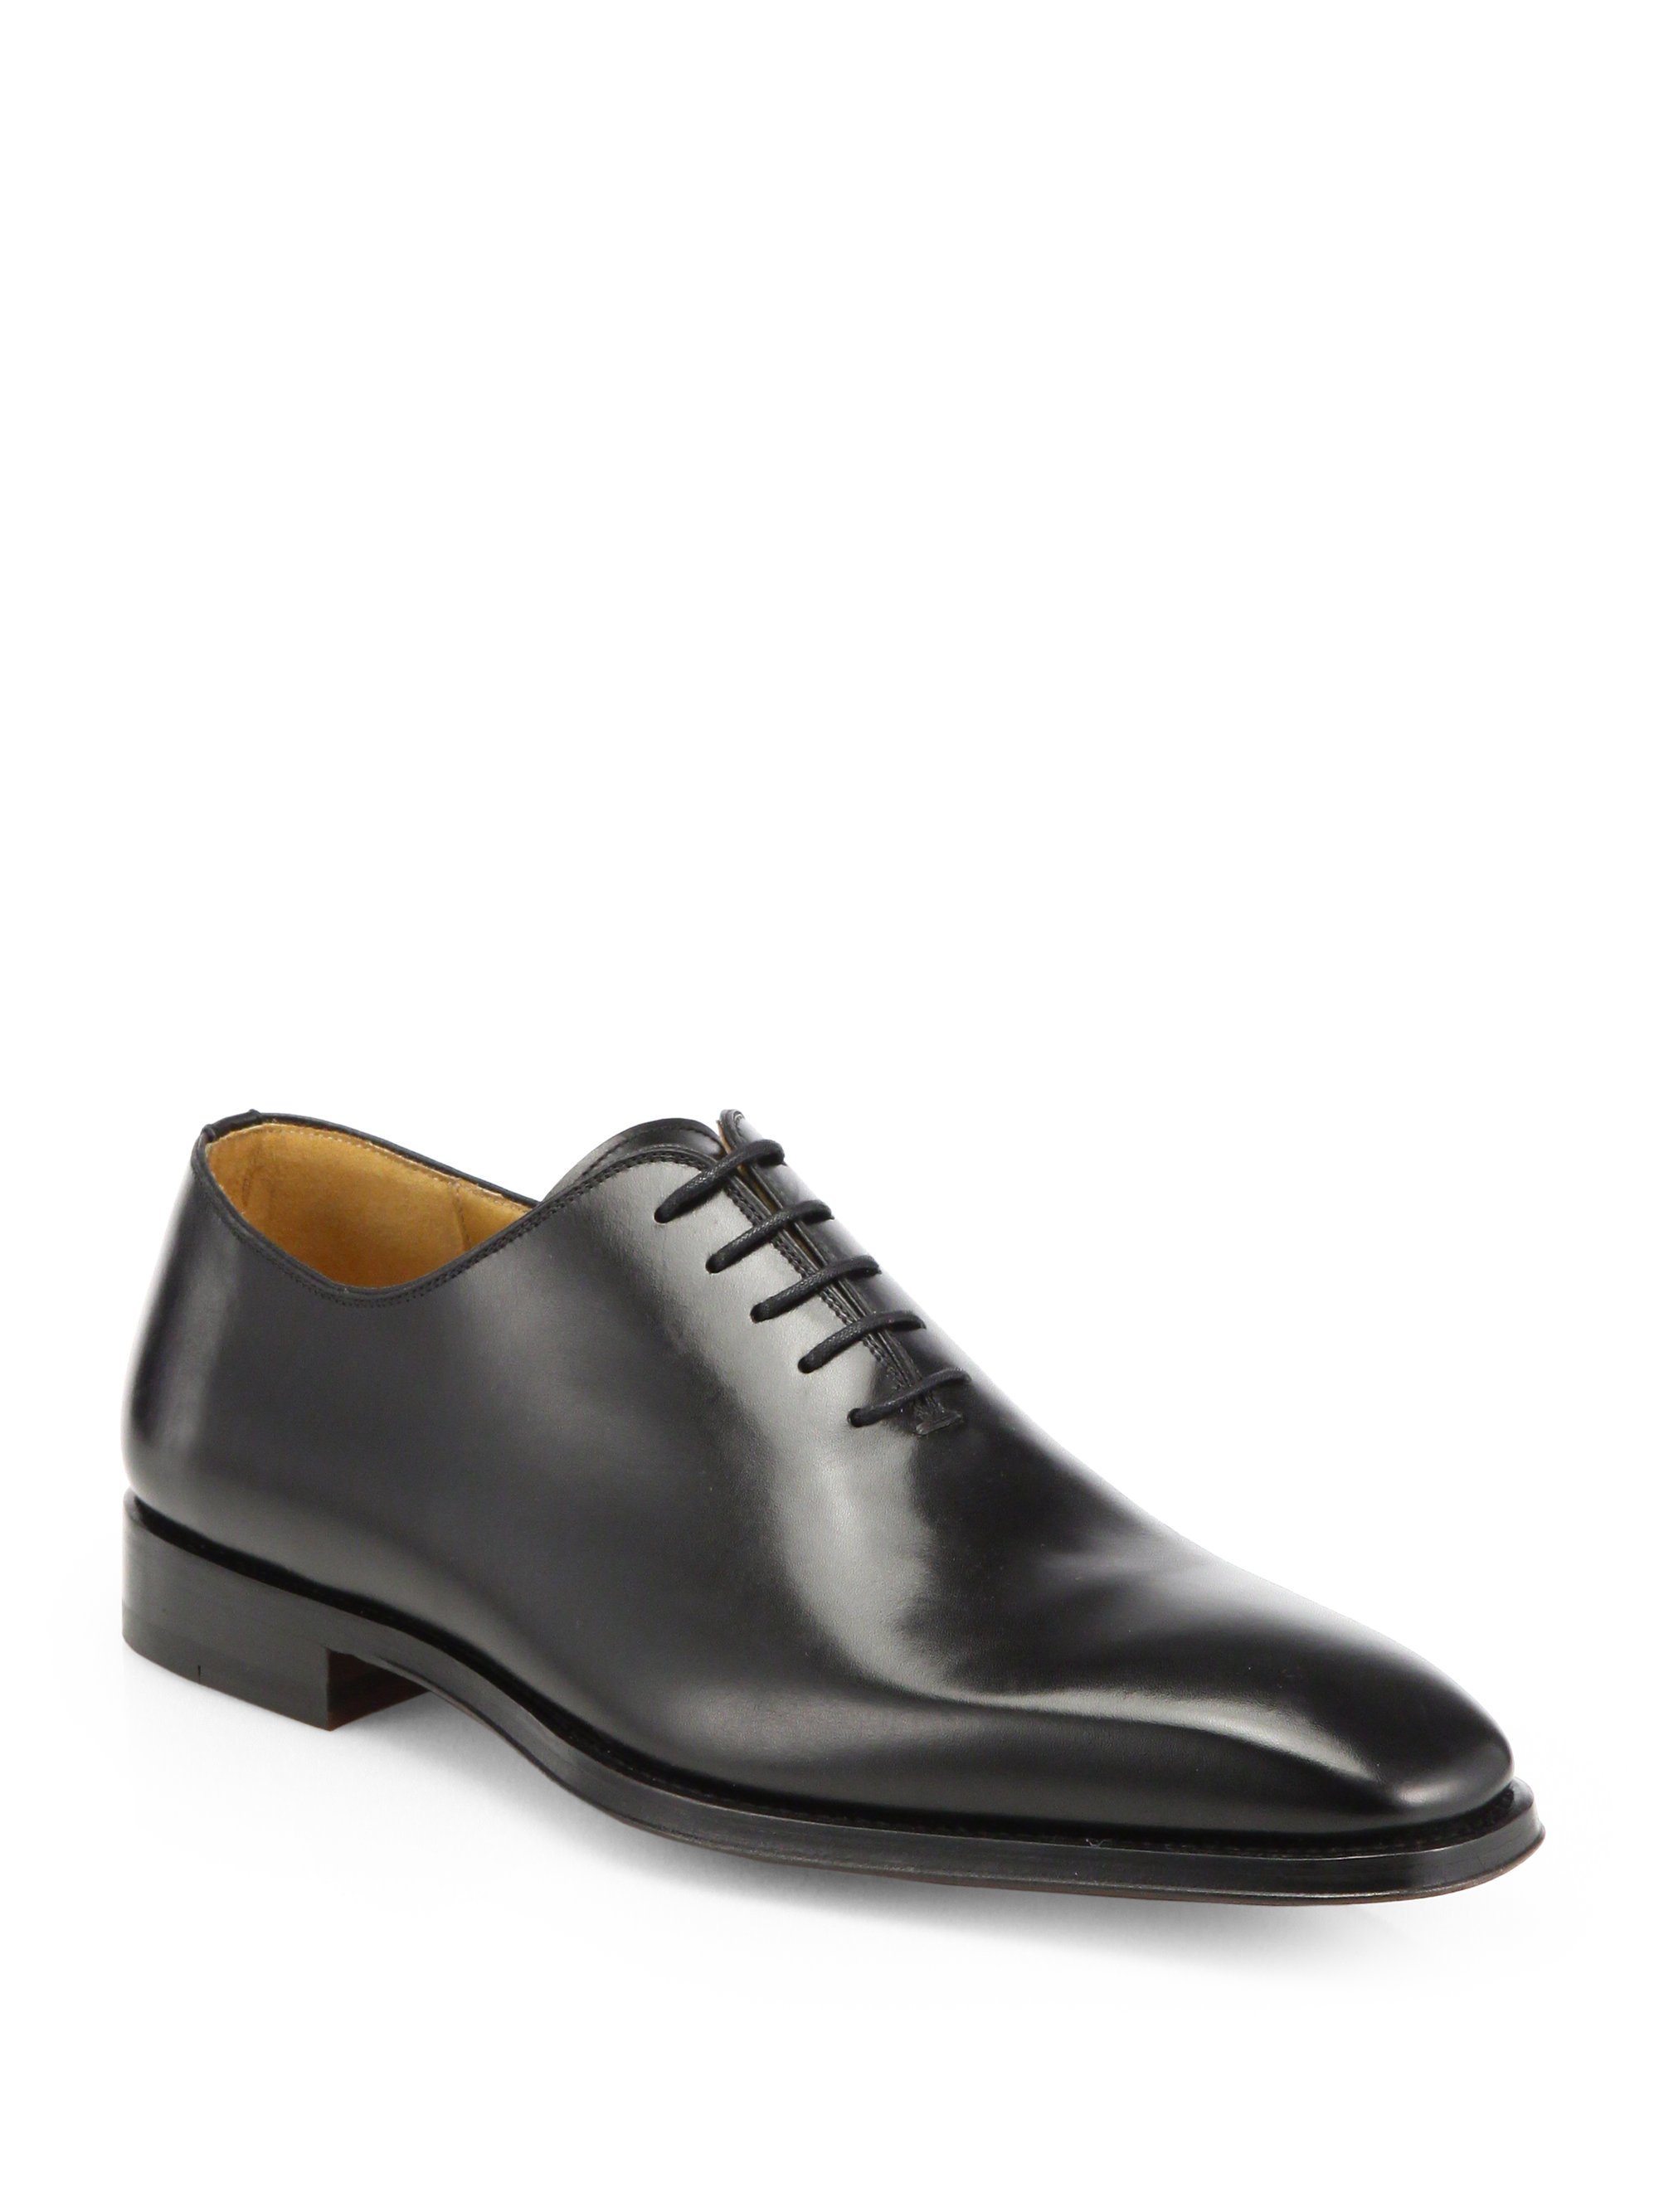 Men, Shoes, Boots at dufucomekiguki.ga, offering the modern energy, style and personalized service of Saks Off 5th stores, in an enhanced, easy-to-navigate shopping experience.